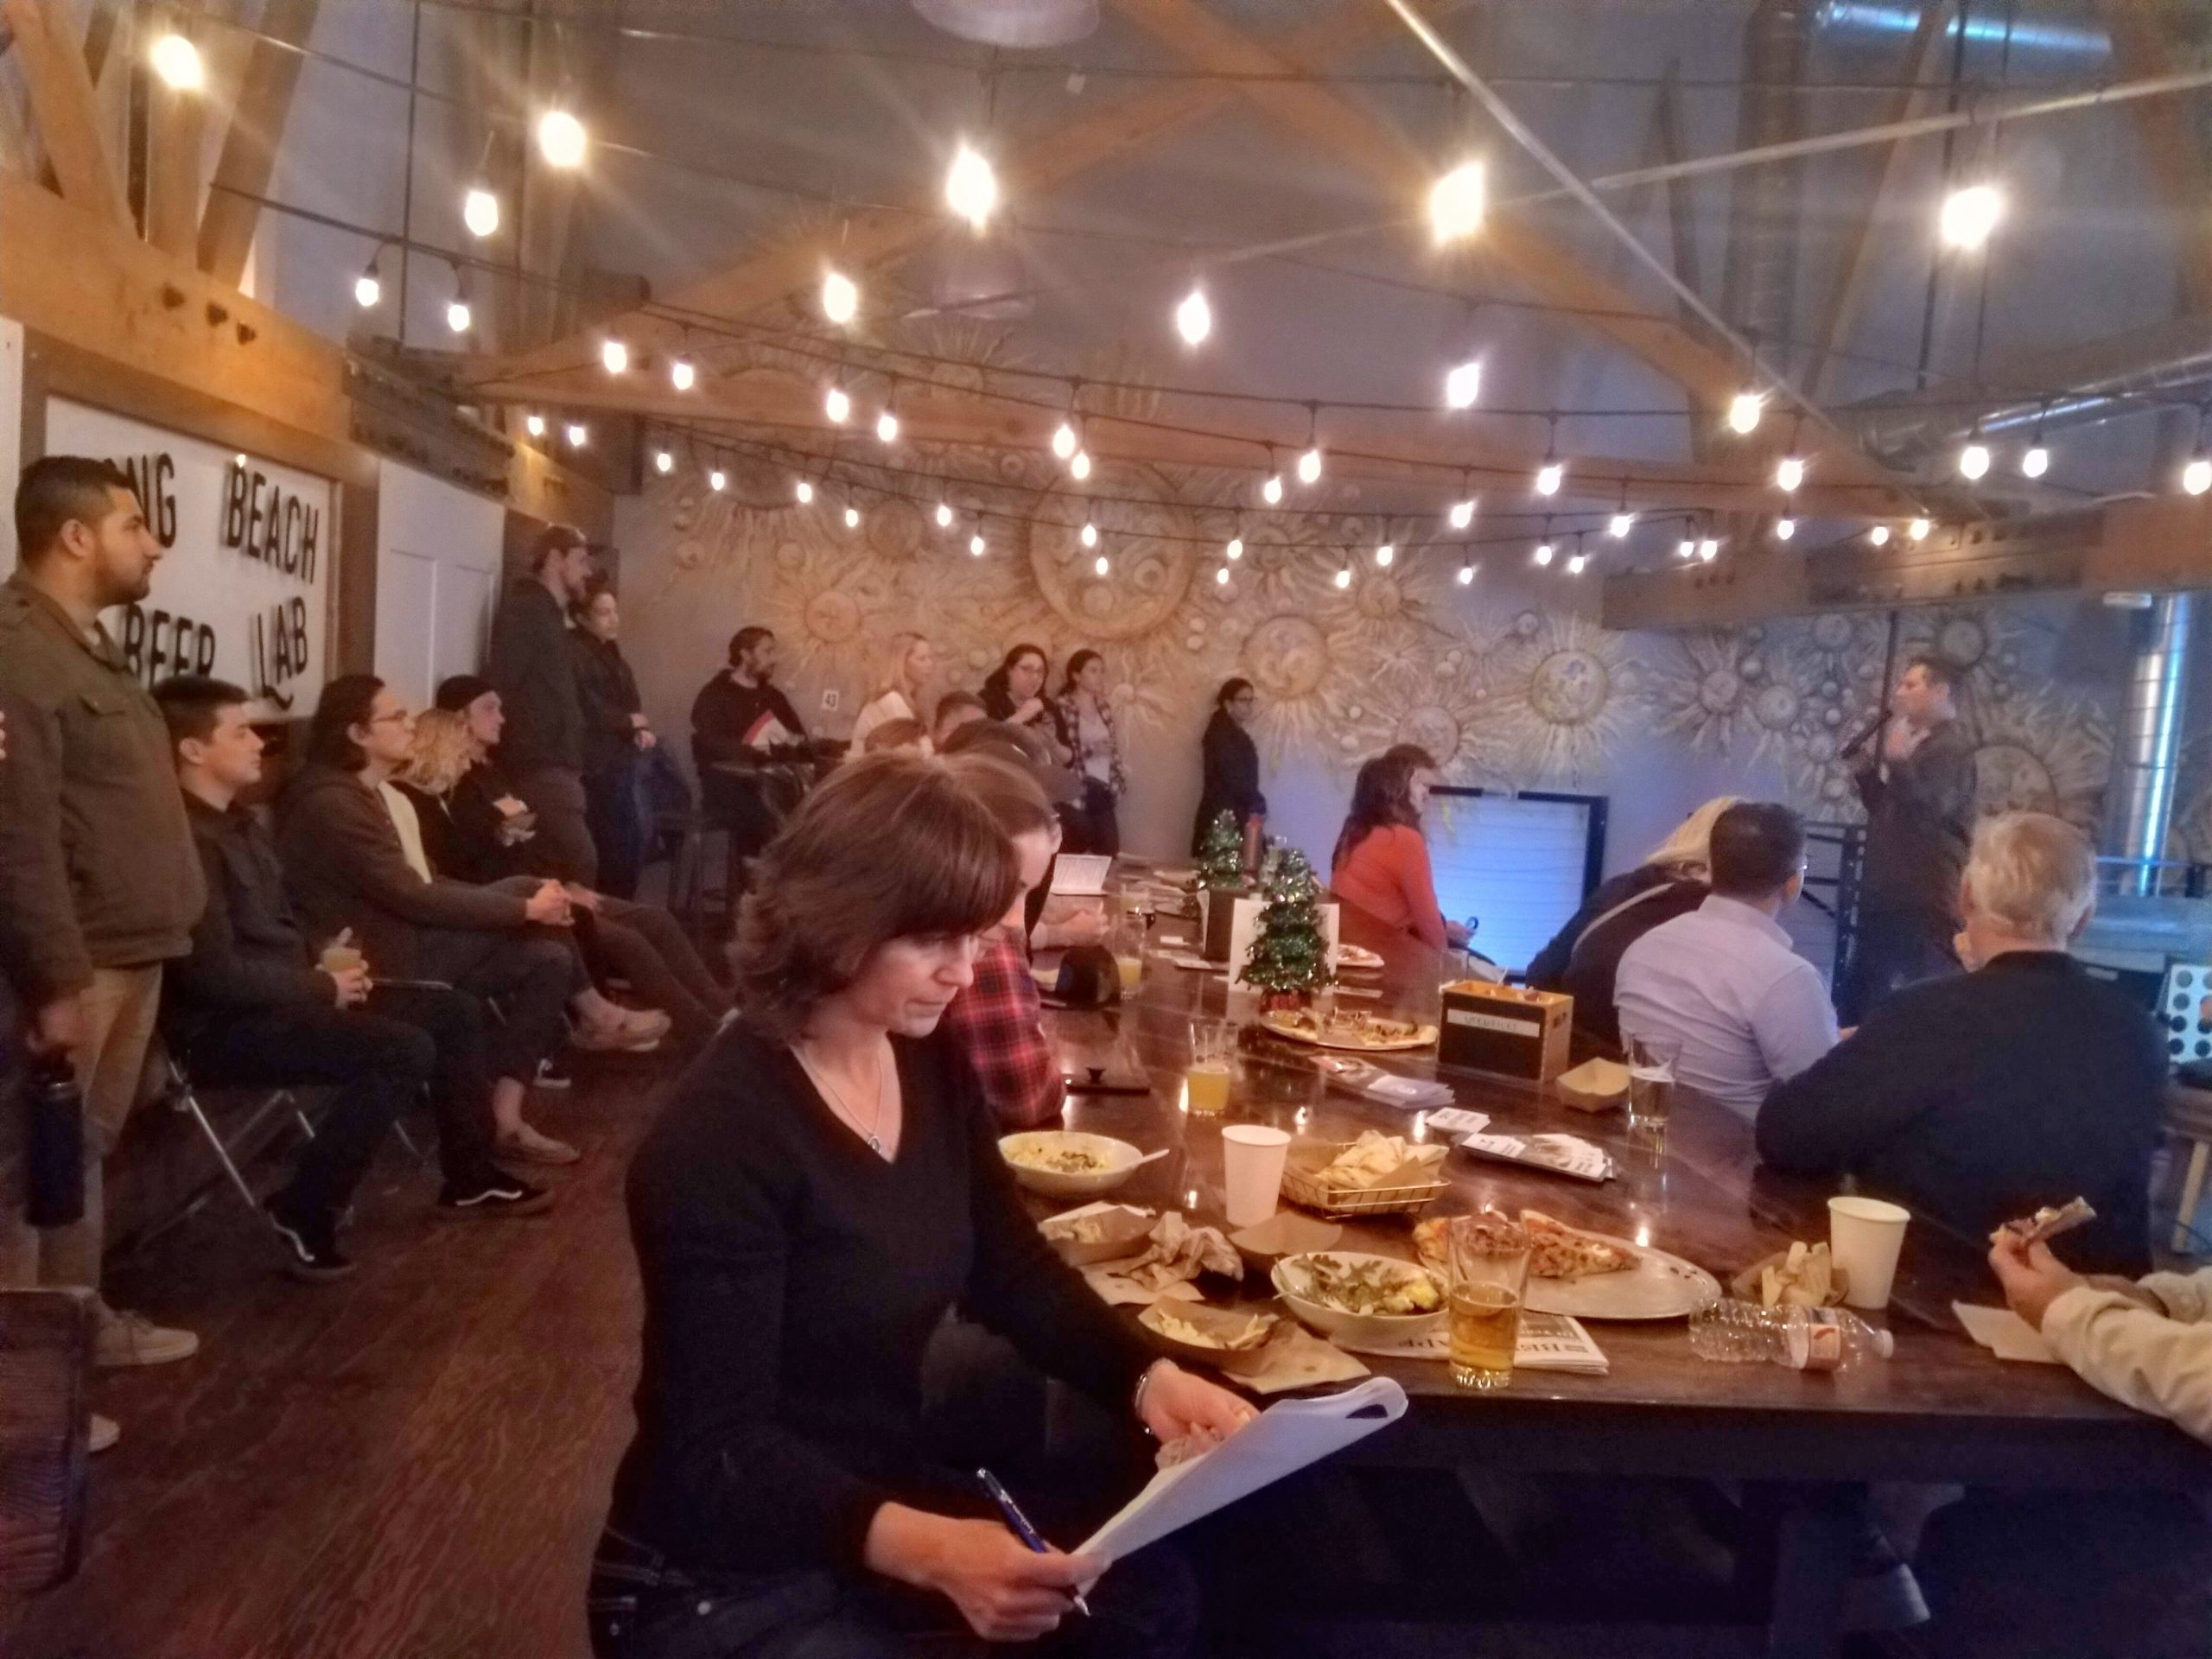 Overview of Chapter Social – The Breakwater!